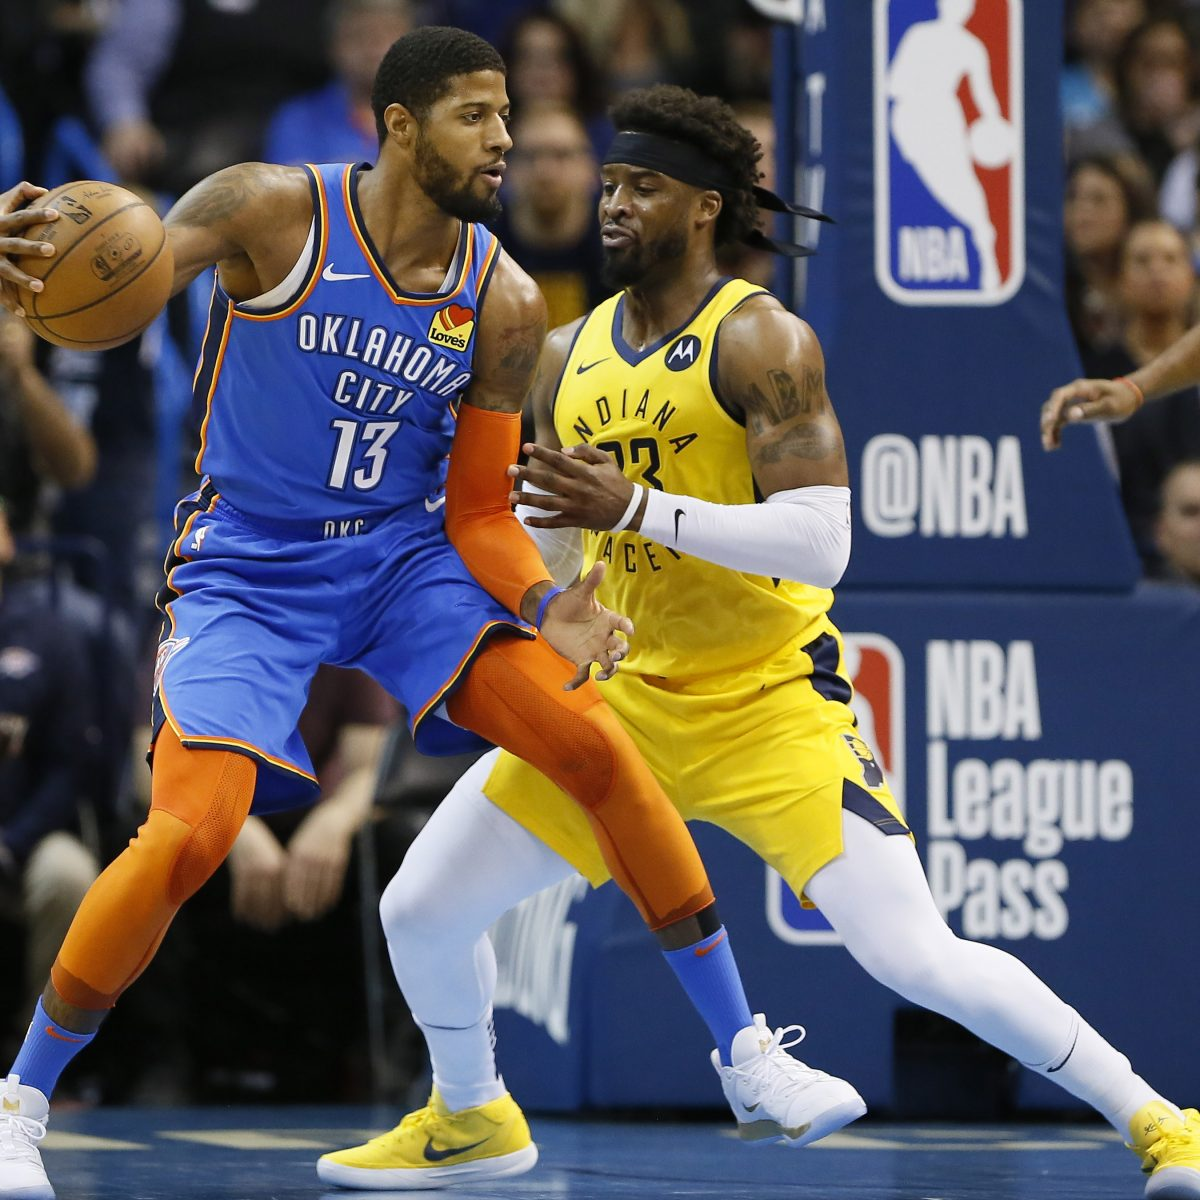 Nba Picks Nuggets And Lakers Game 7 Odds And Betting: Los Angeles Lakers Vs. Oklahoma City Thunder Prediction